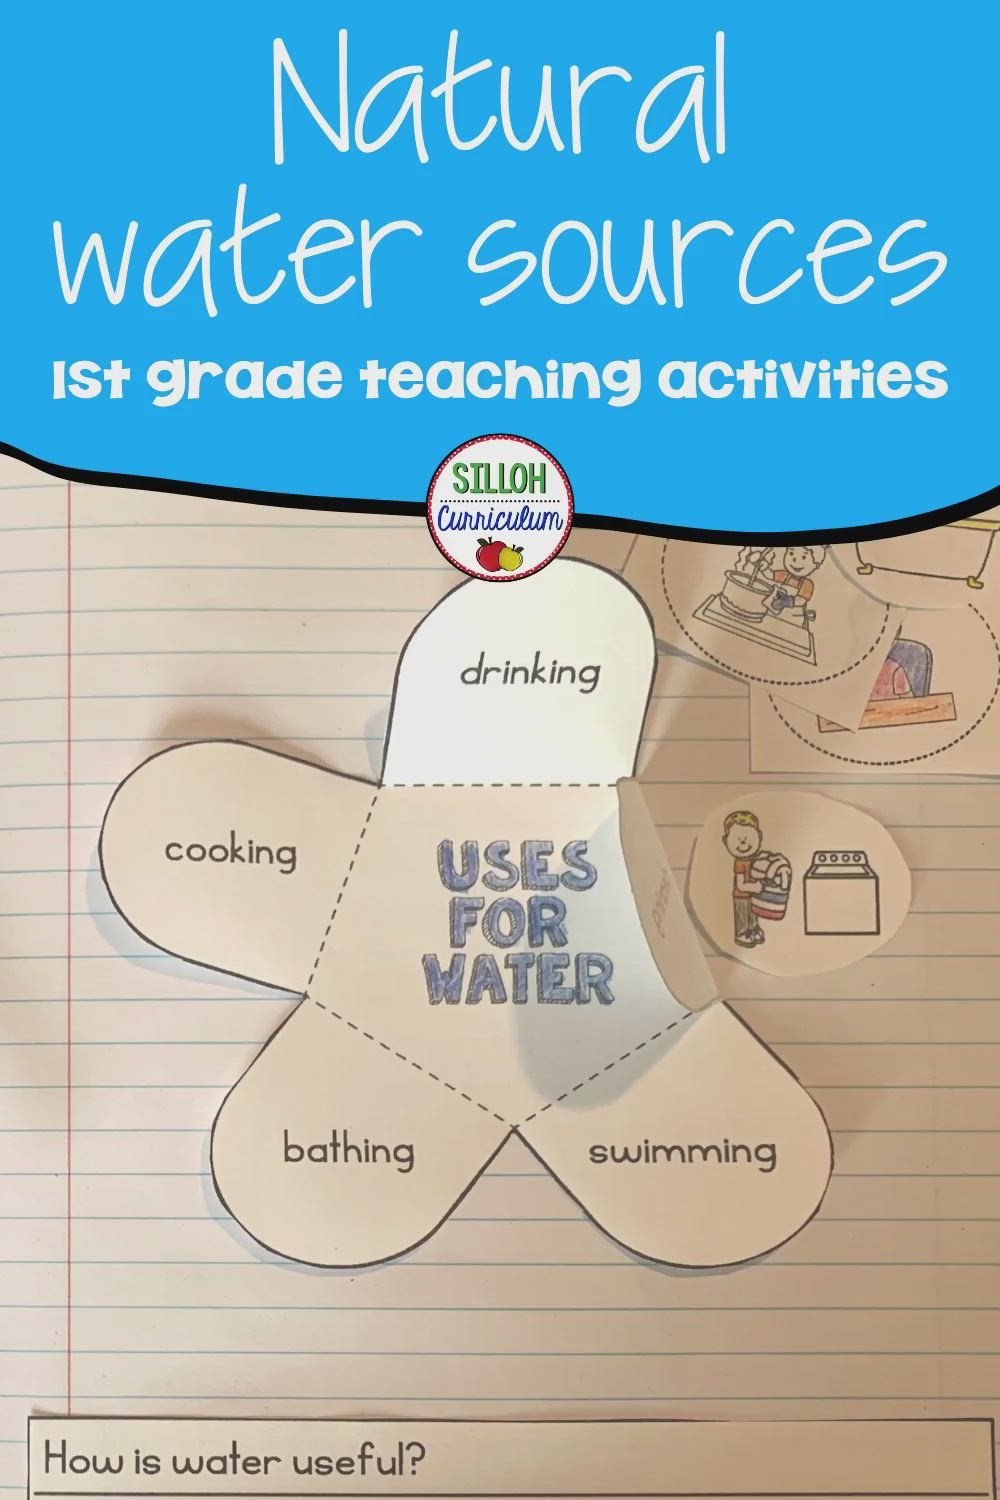 1st Grade Natural Sources Of Water Earth Science Activities Silloh Curriculum Video In 2021 Earth Science Activities Elementary Science Activities Science Activities [ 1500 x 1000 Pixel ]